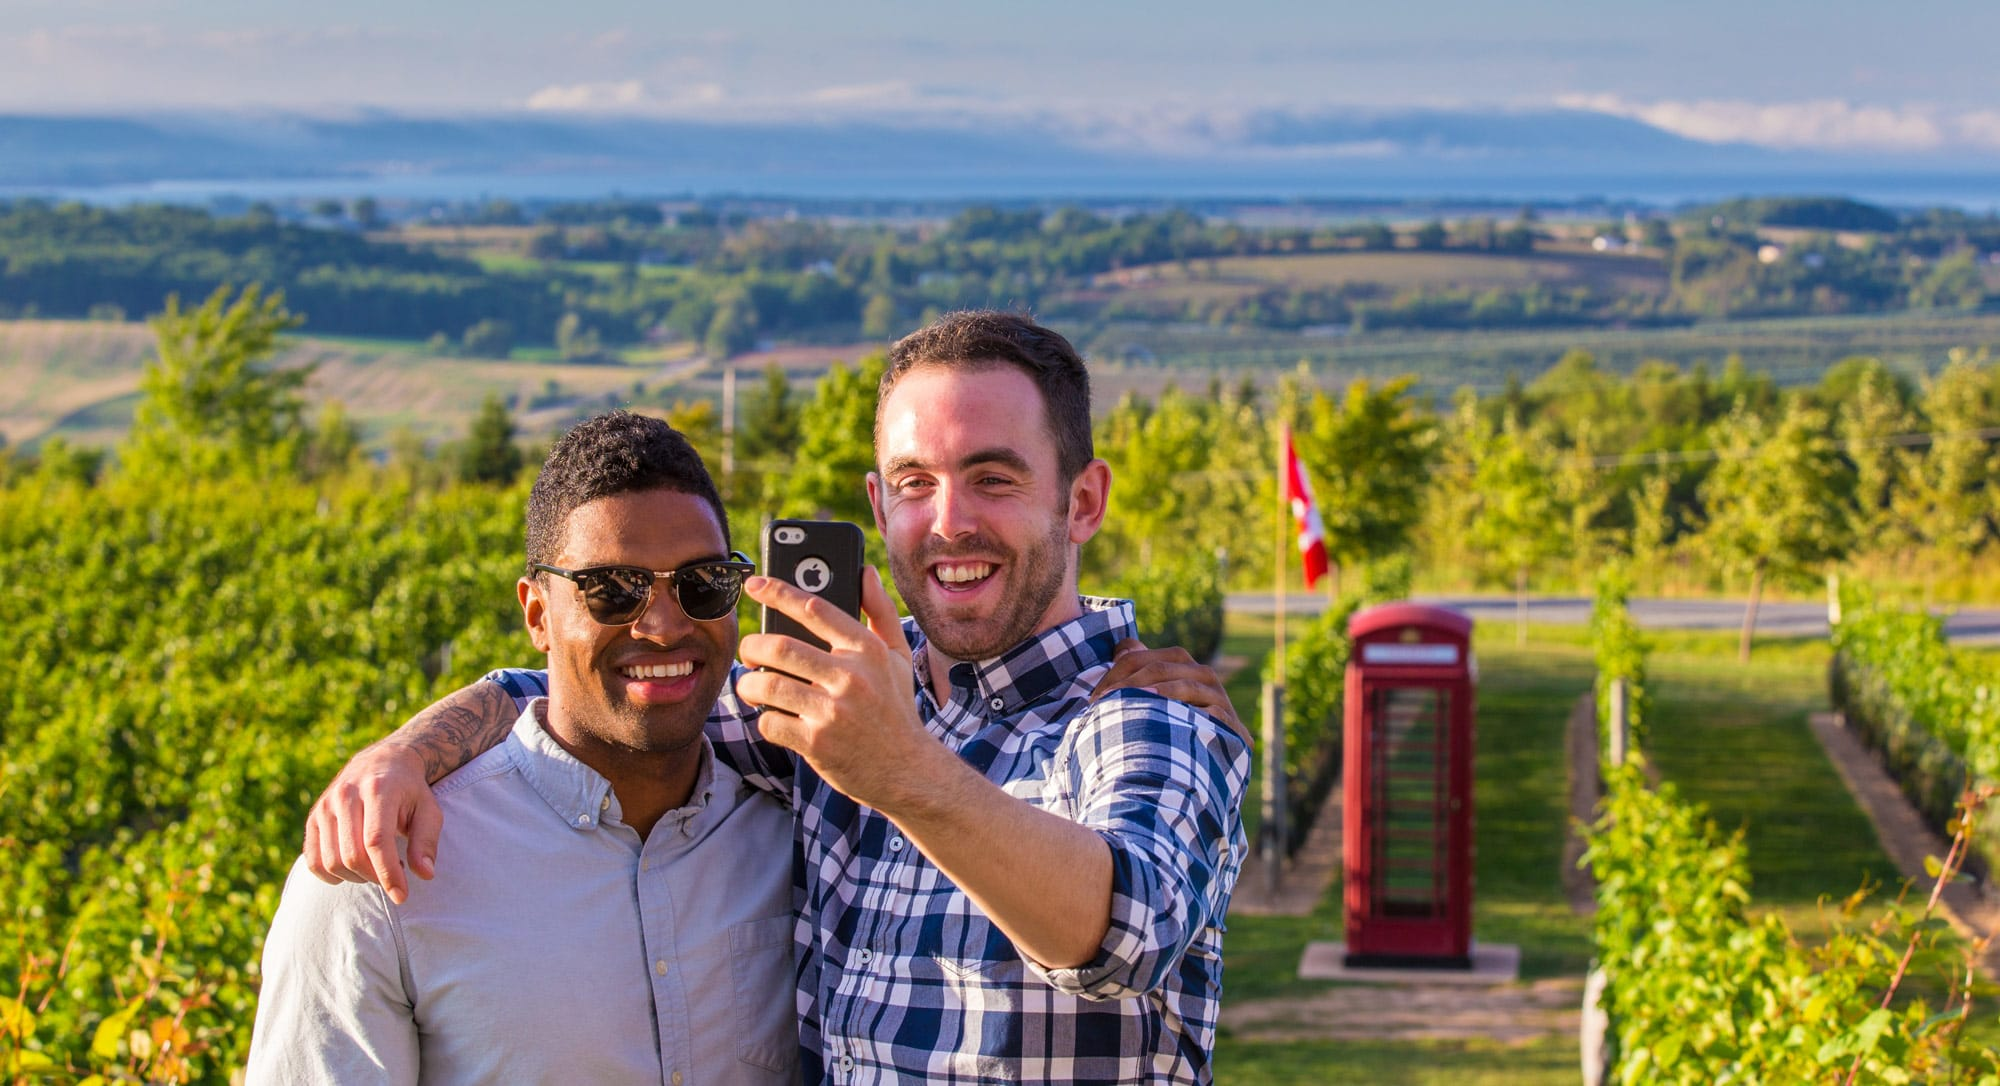 Two men taking a selfie in front of the vineyard and a wine shop